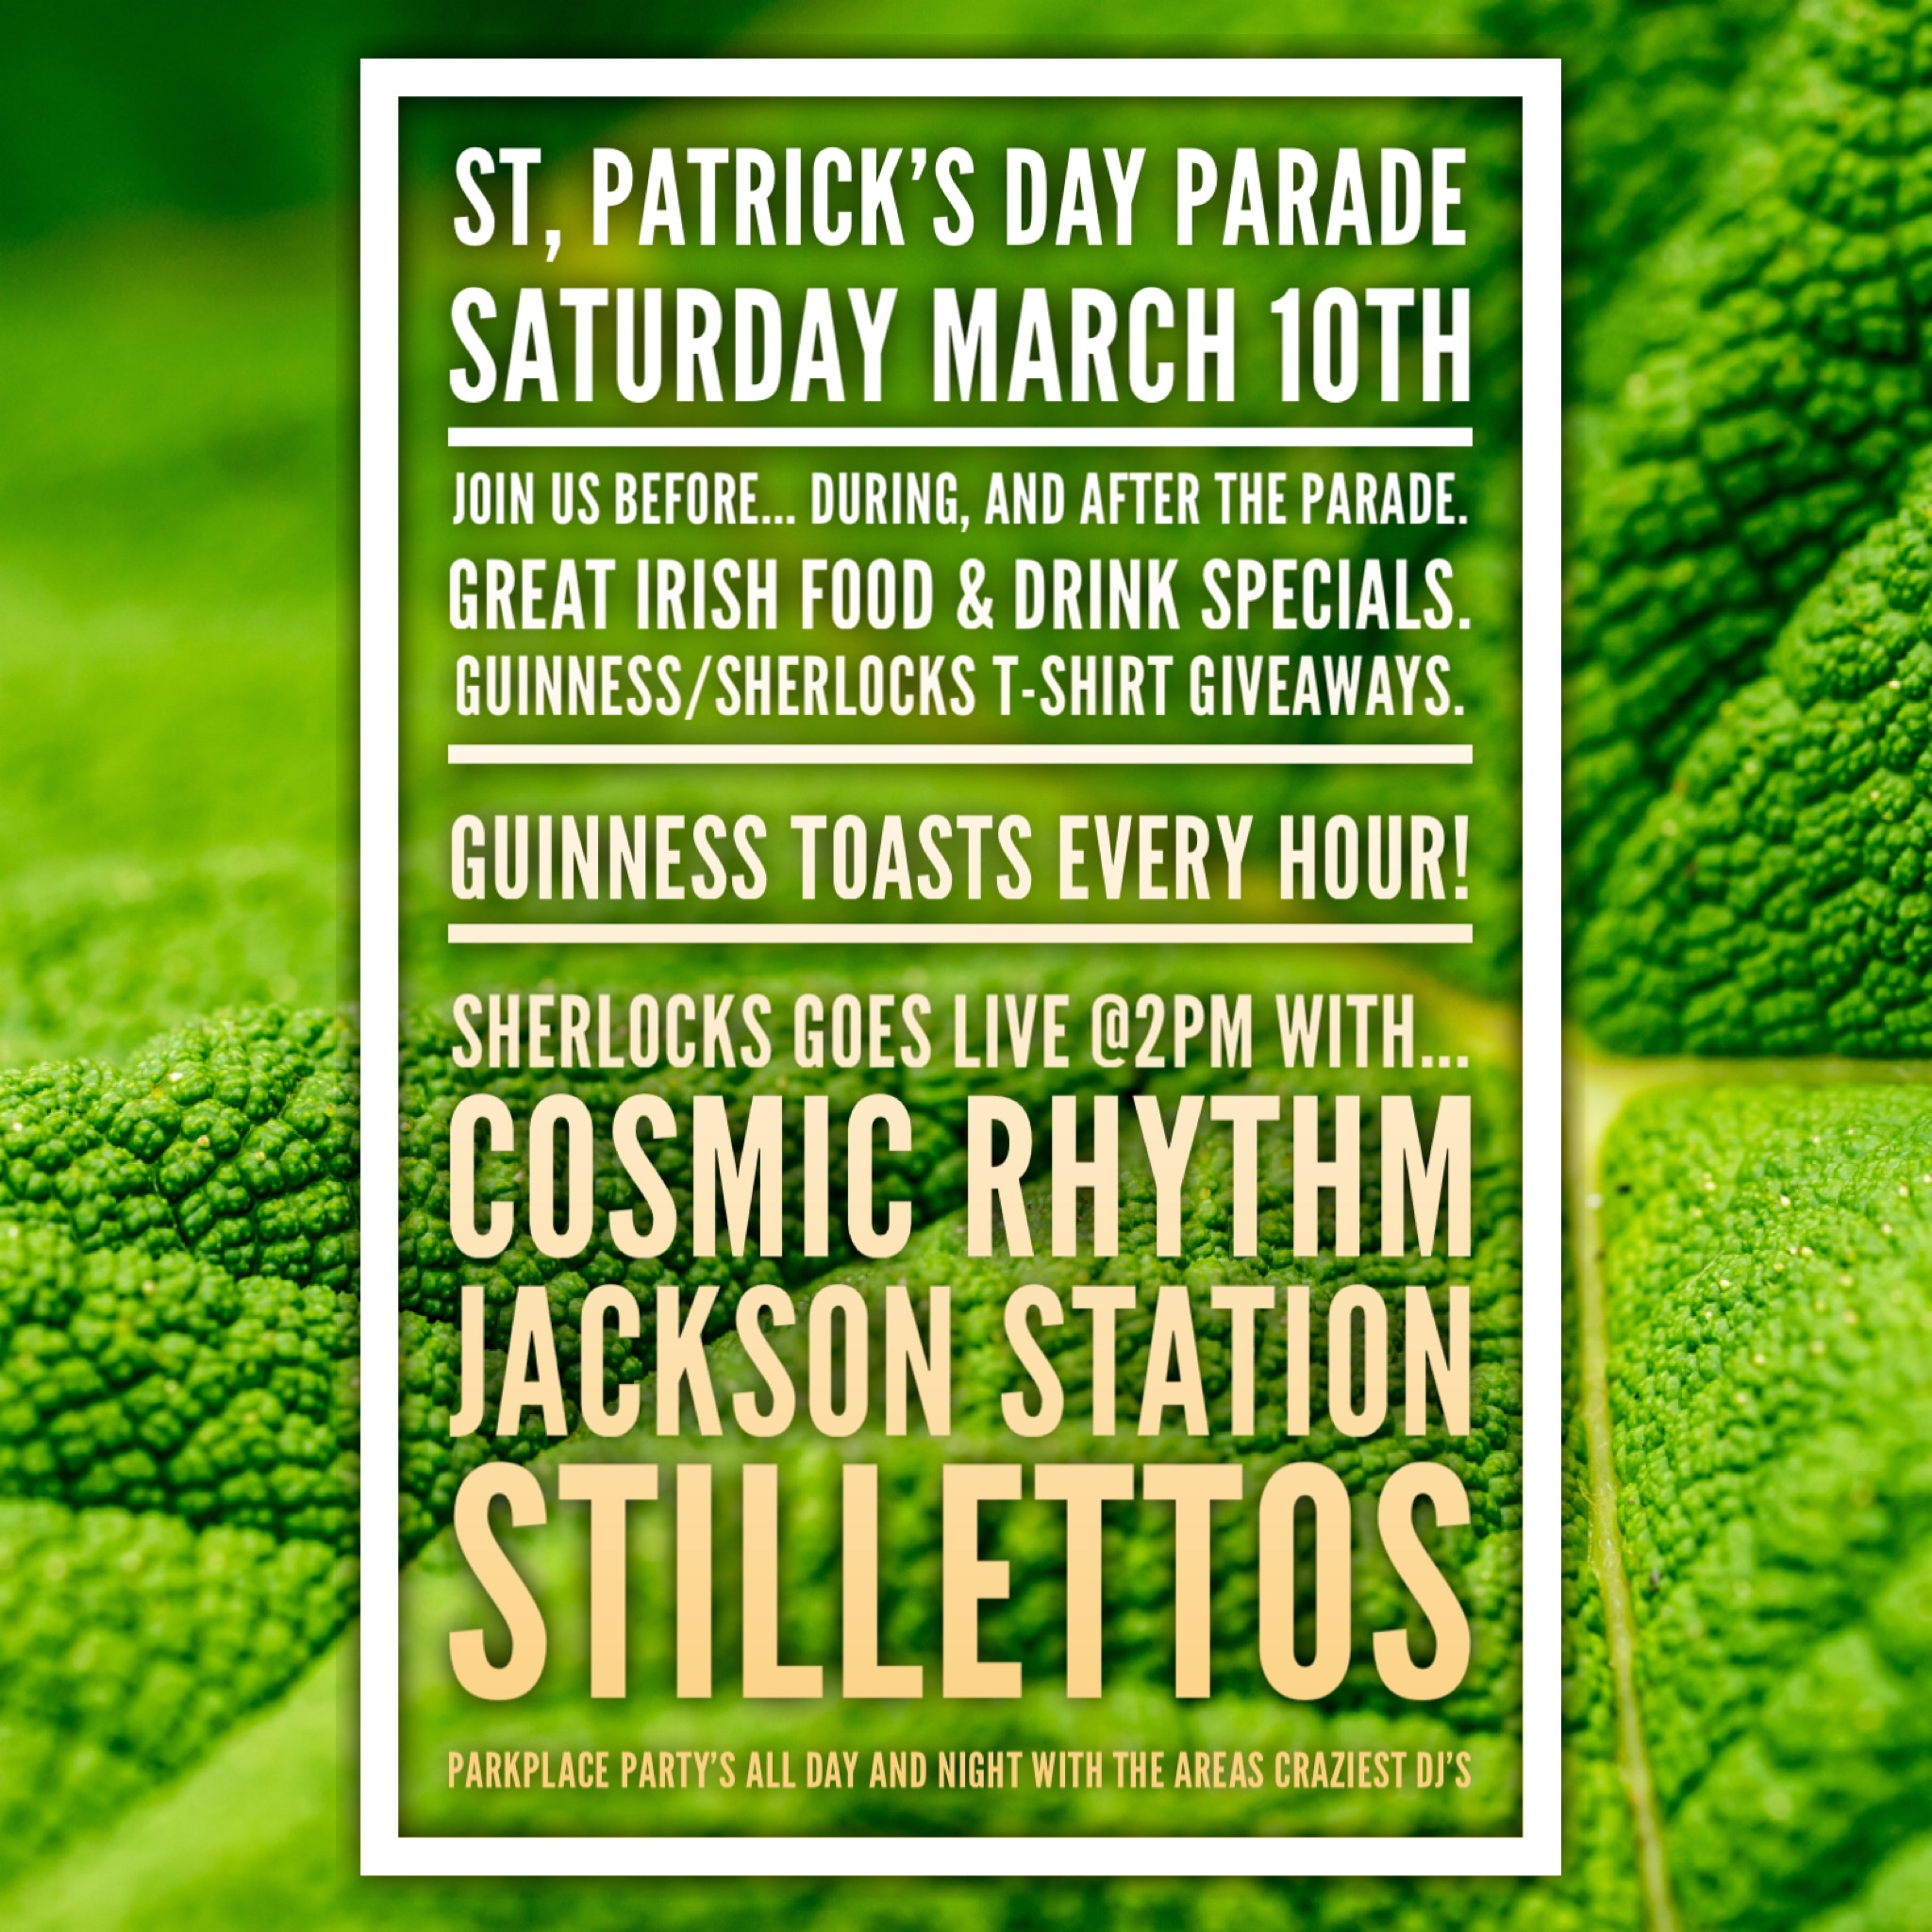 St, Patrick's Day Parade  Saturday March 10th  Join us before... During, and after the parade. Great Irish Food & Drink Specials. Guinness/Sherlocks T-shirt giveaways.  Guinness toasts every Hour!  Sherlocks goes live @2pm with...  COSMIC RYTHEM  JACKSON STATION  STILLETTOS  PARKPLACE party's all day and night with the areas craziest Dj's